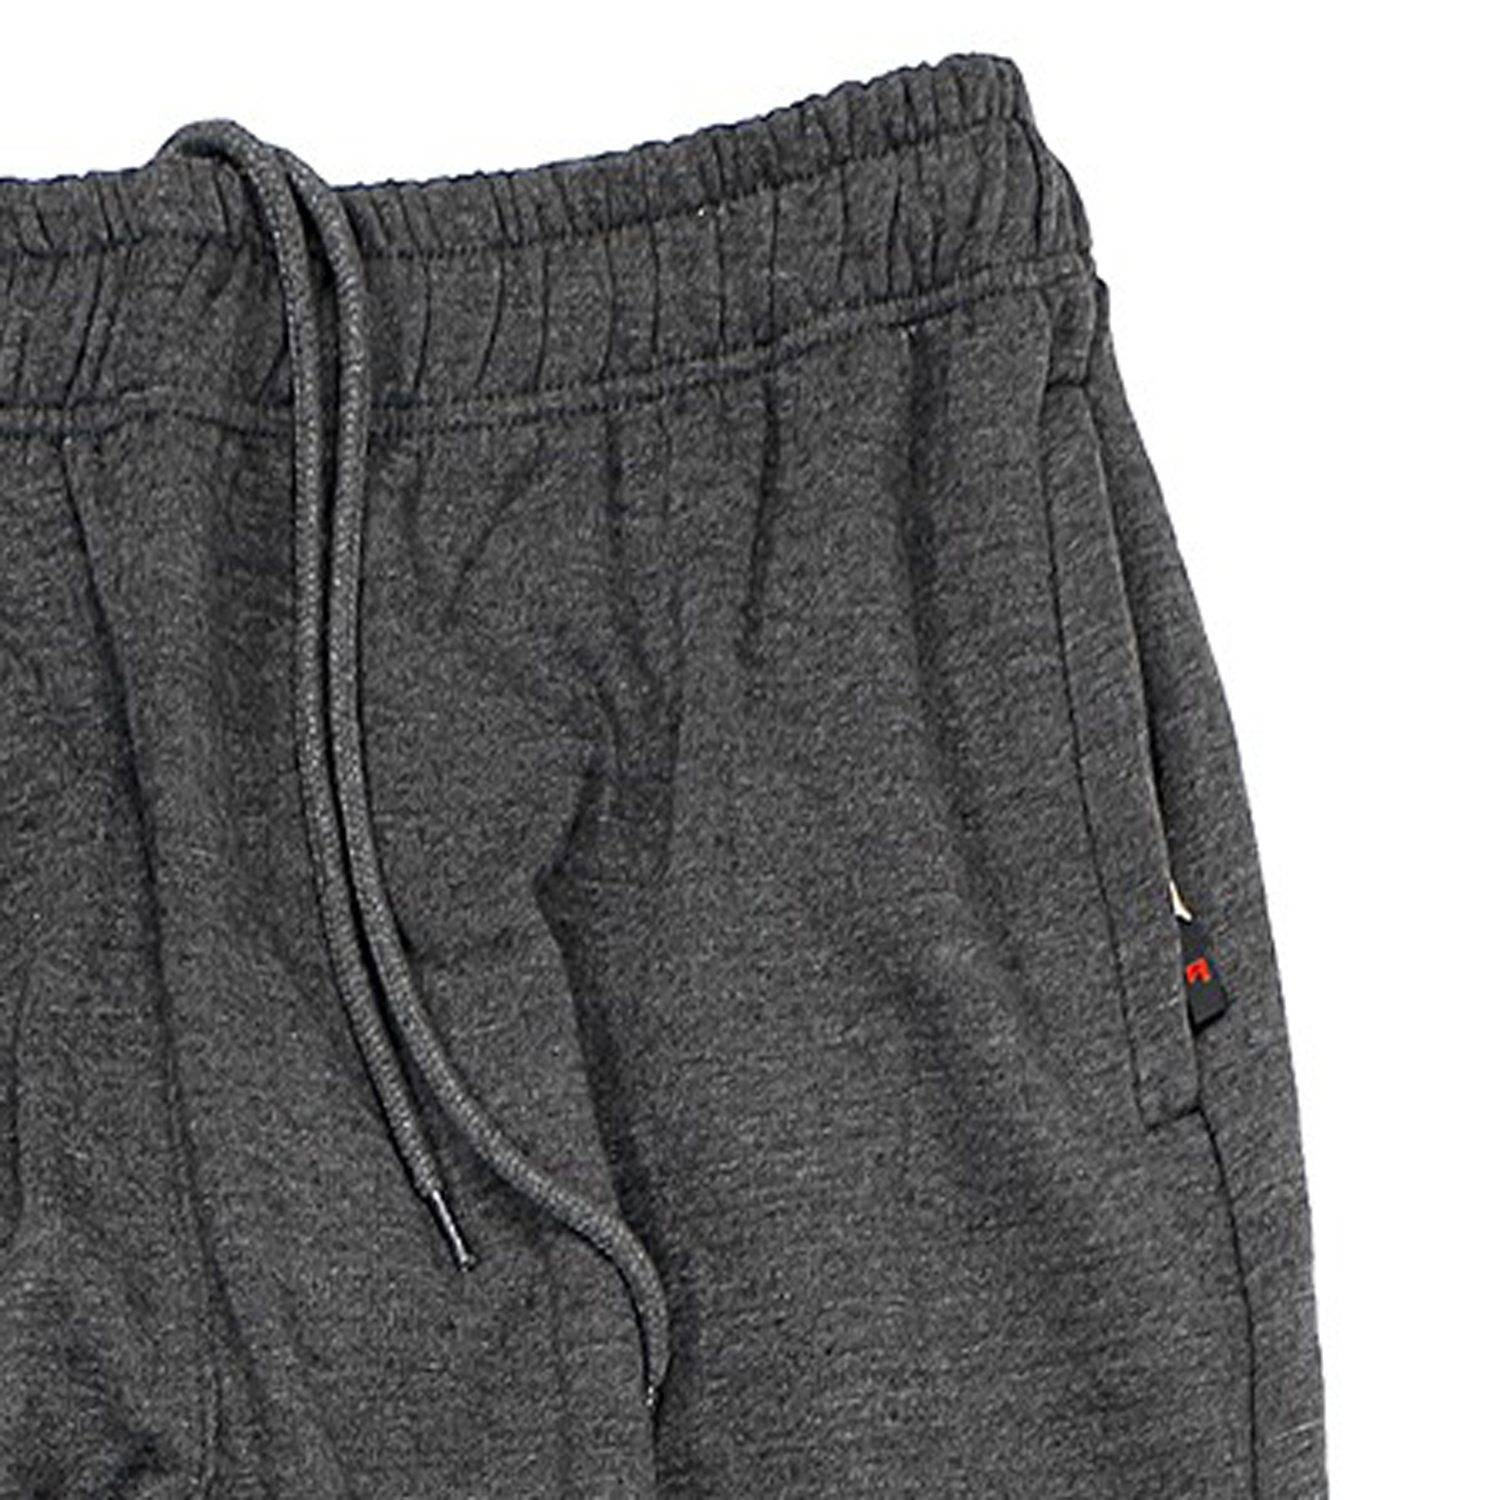 Detail Image to Jogging trousers model ALBERT in grey by Rockford in oversizes until 8XL